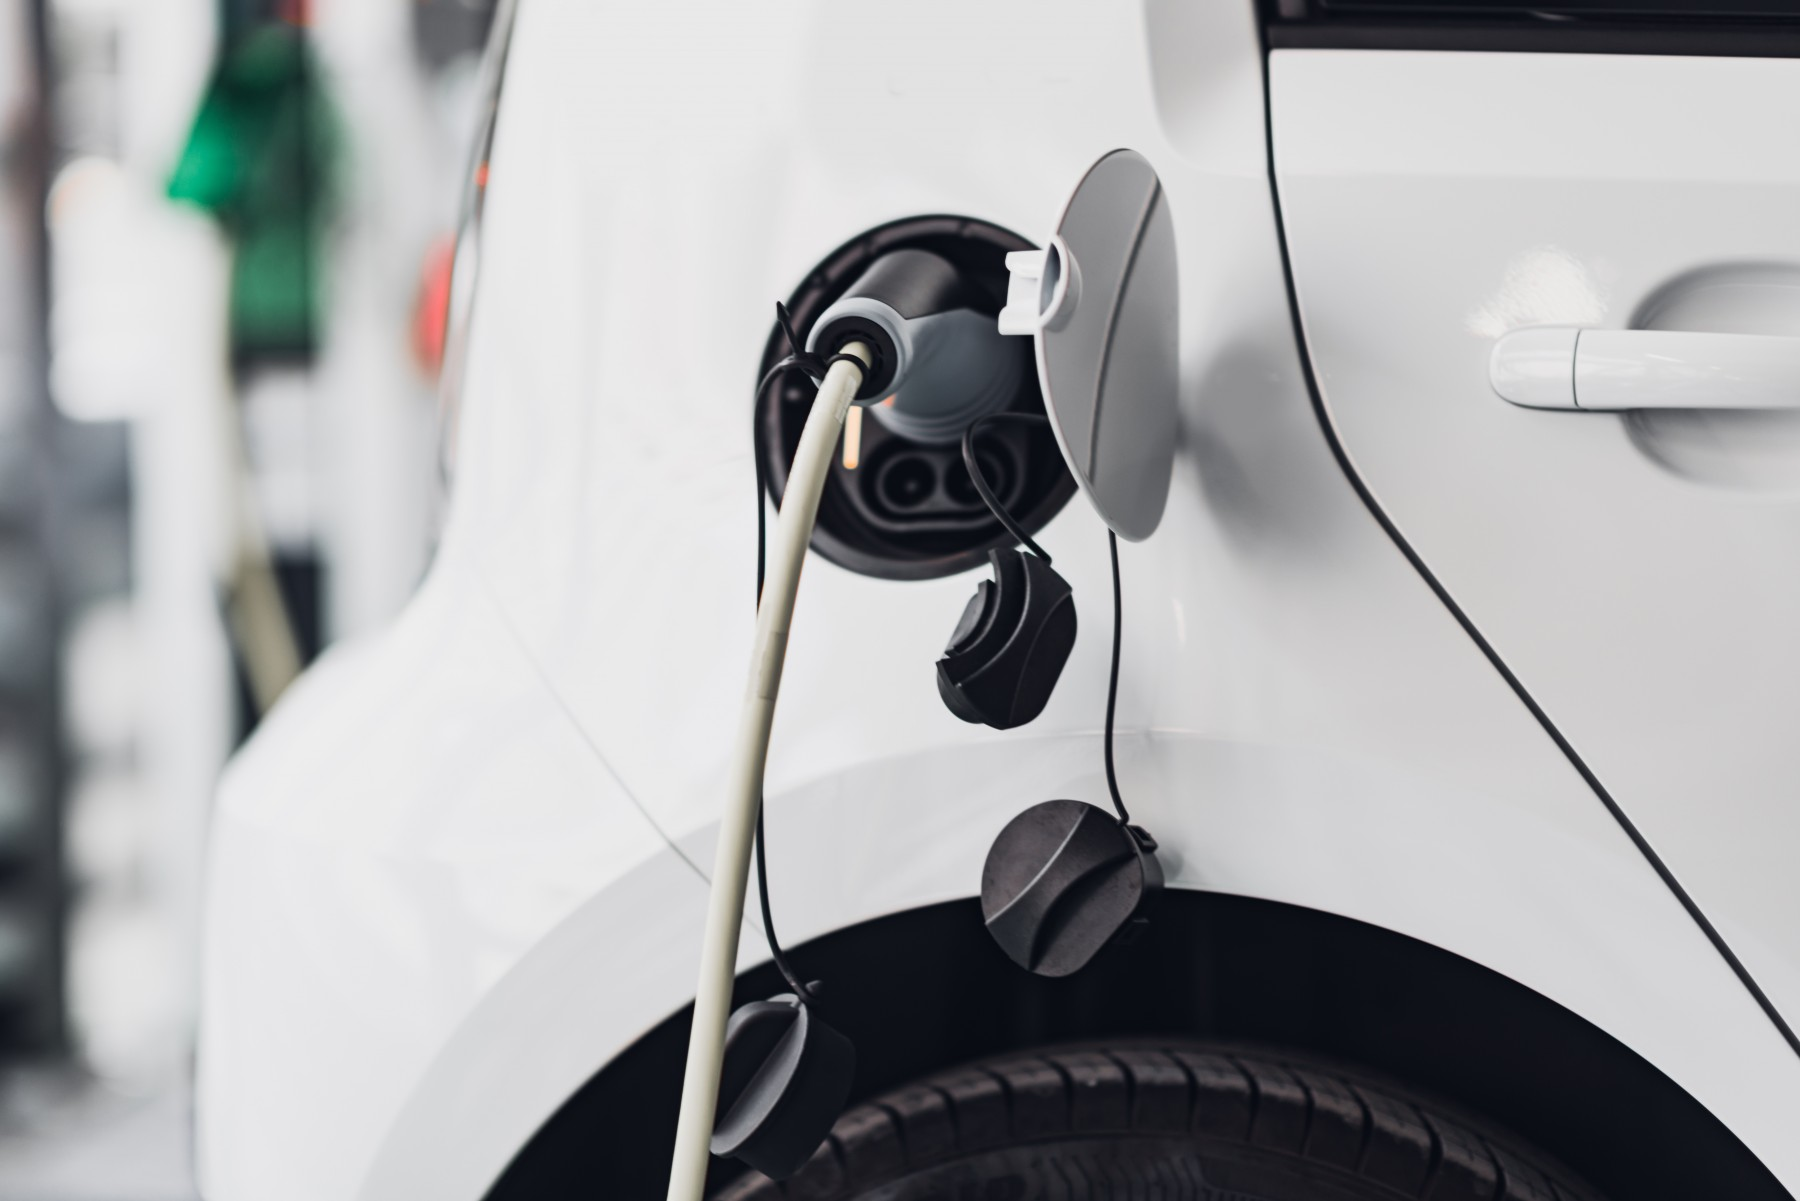 electric vehicle charger - Tim Kyle